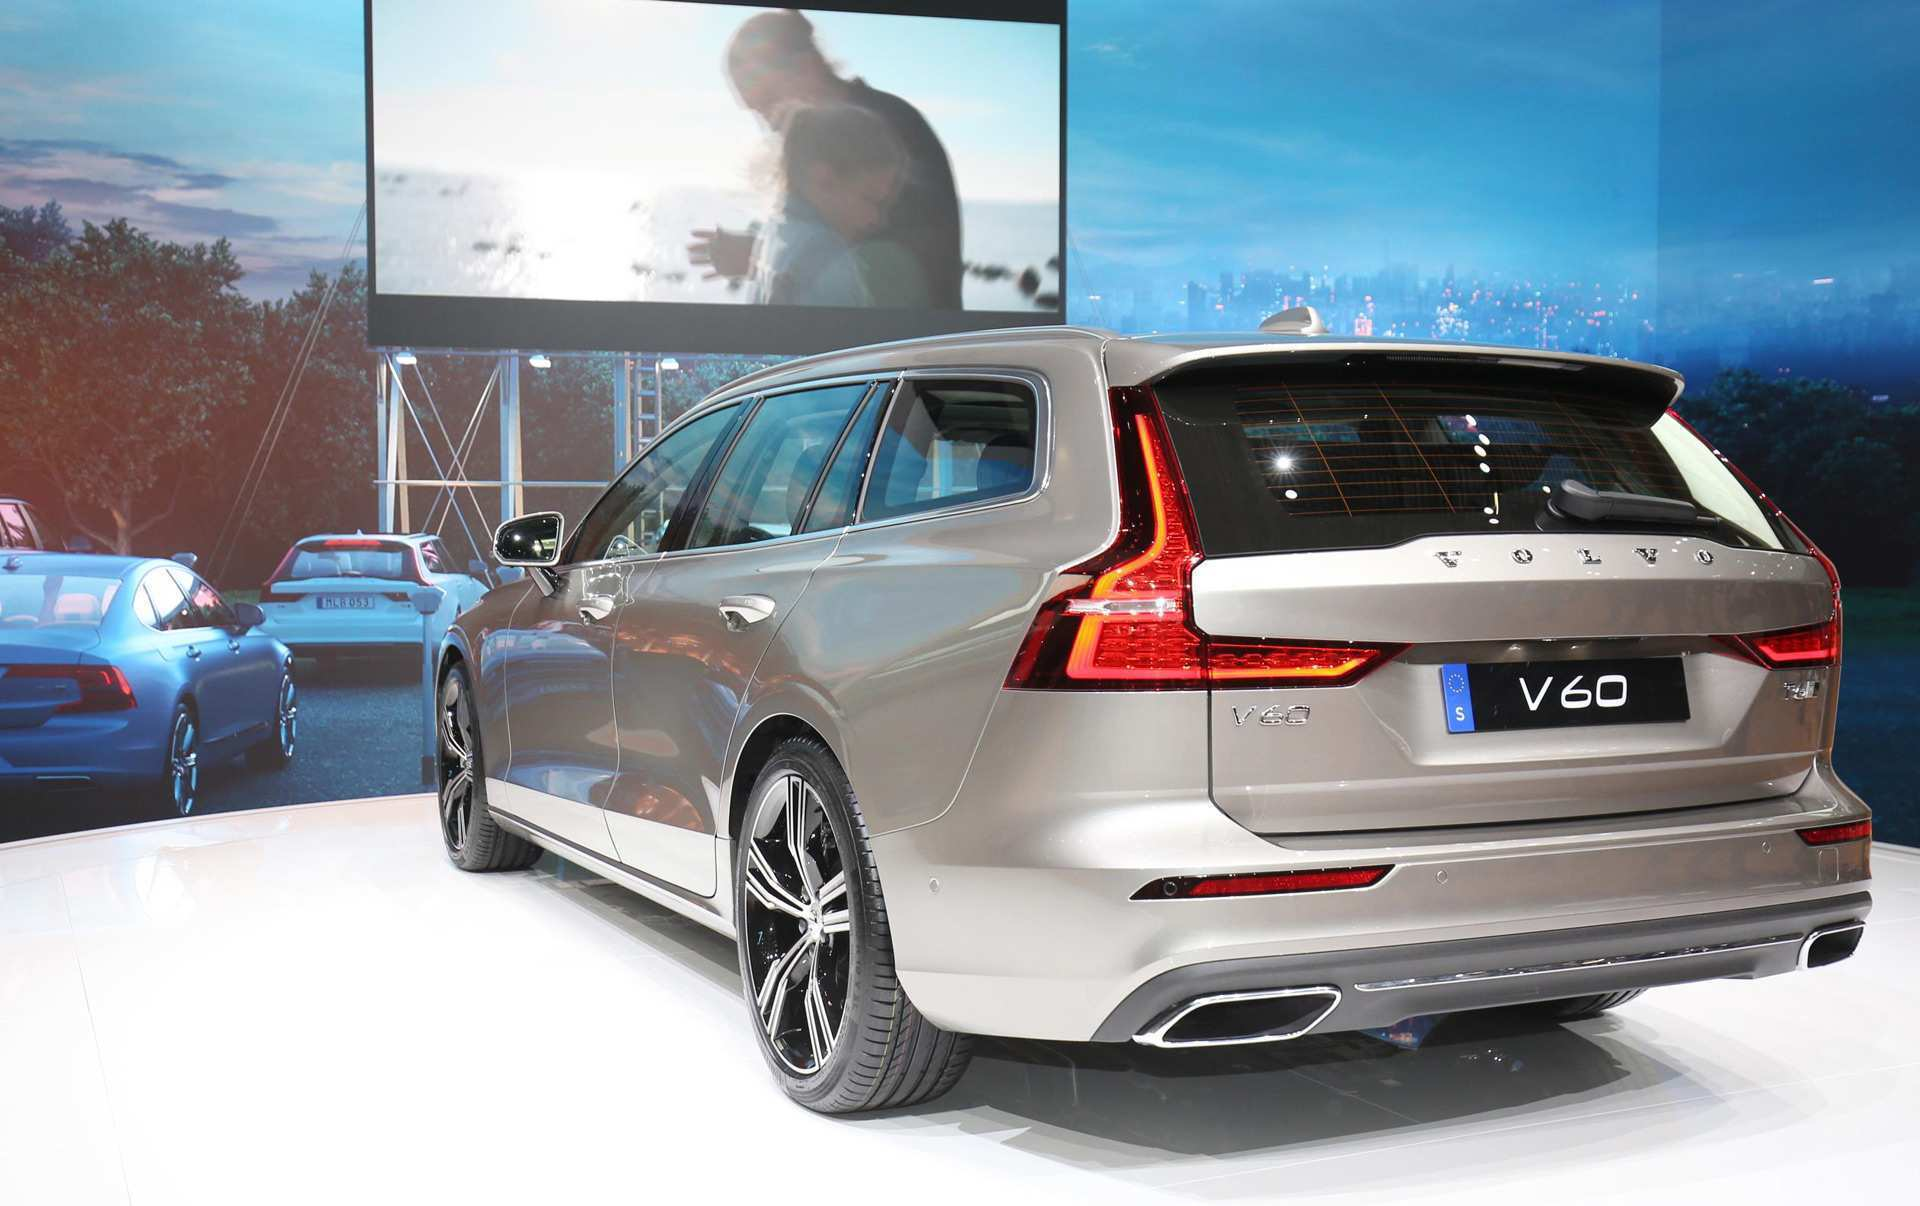 65 The Best 2019 Volvo V70 Exterior And Interior